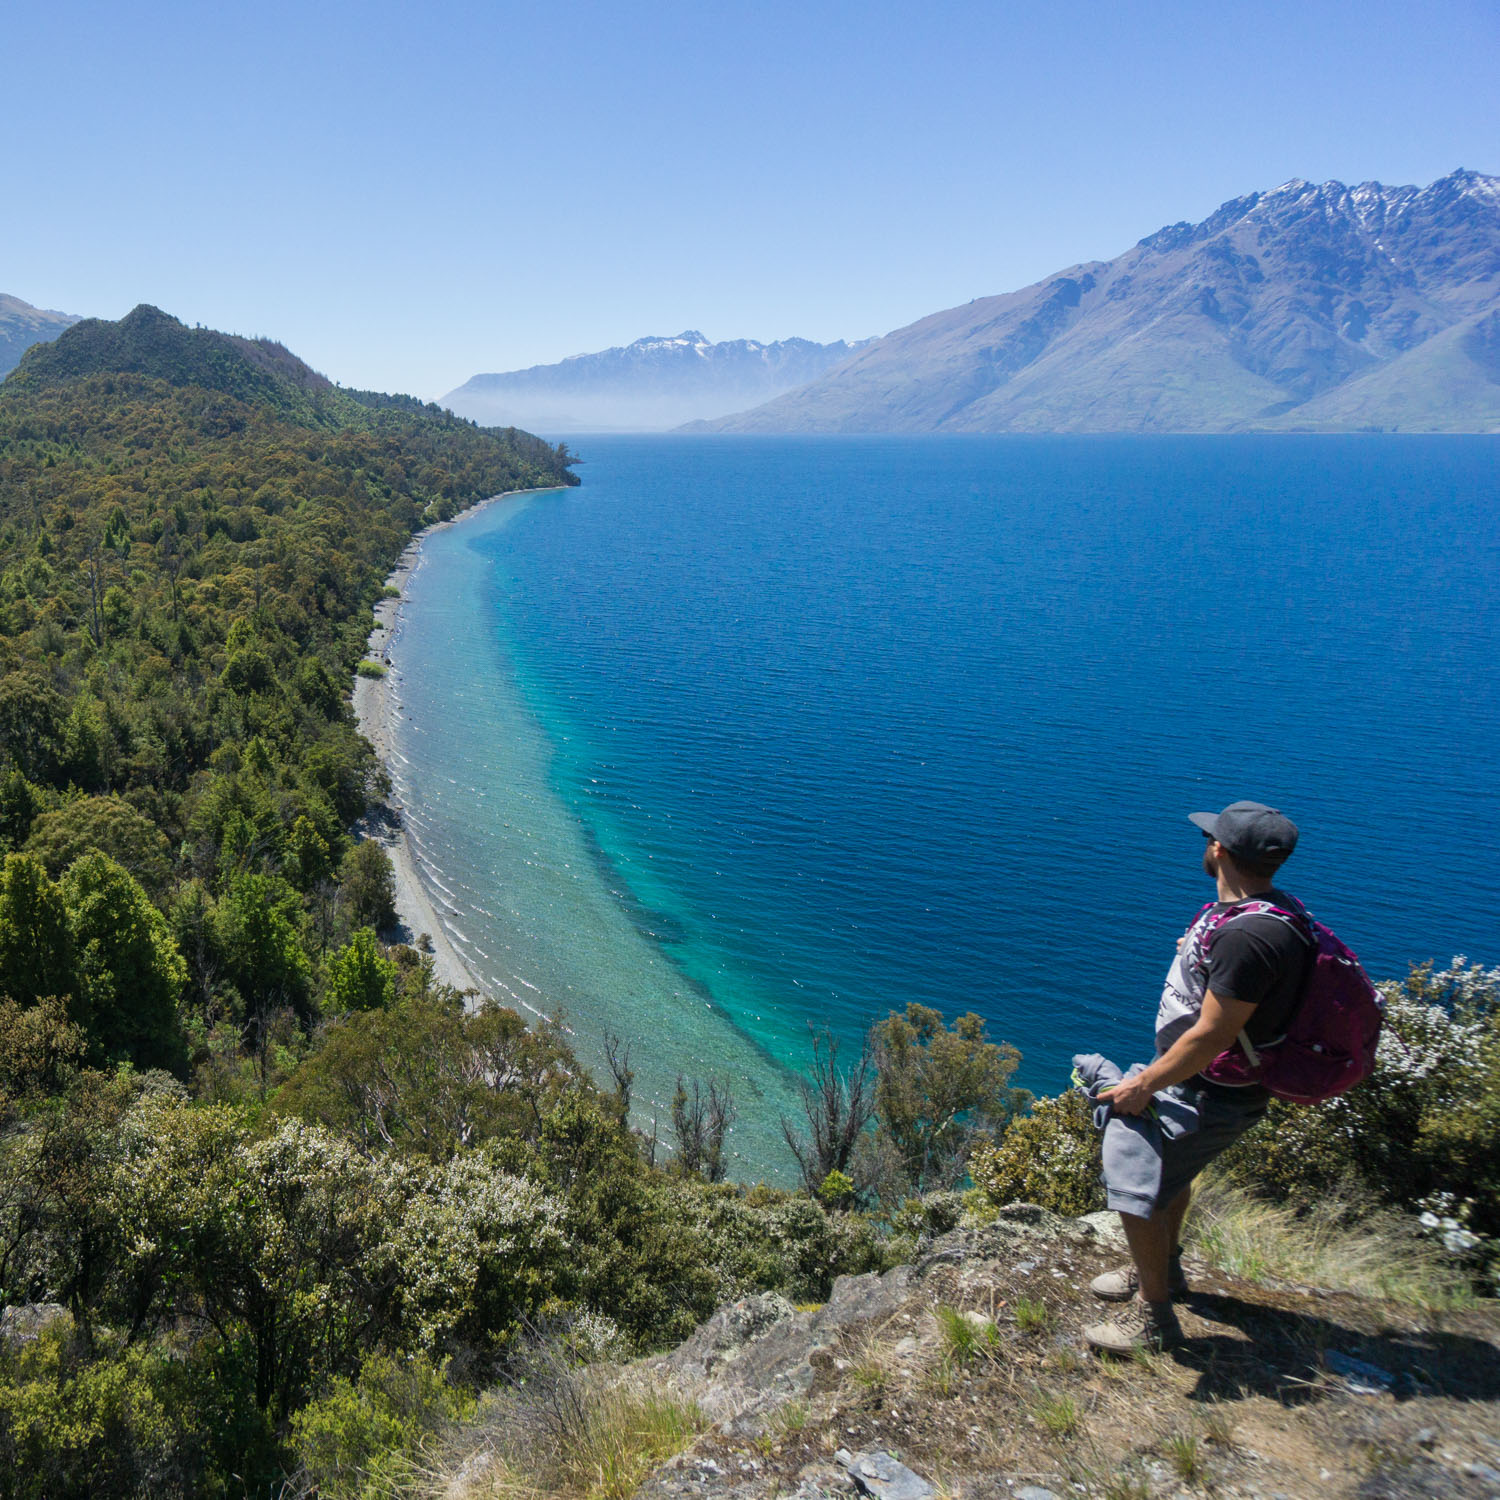 bobs cove track is the perfect stop during a new zealand roadtrip